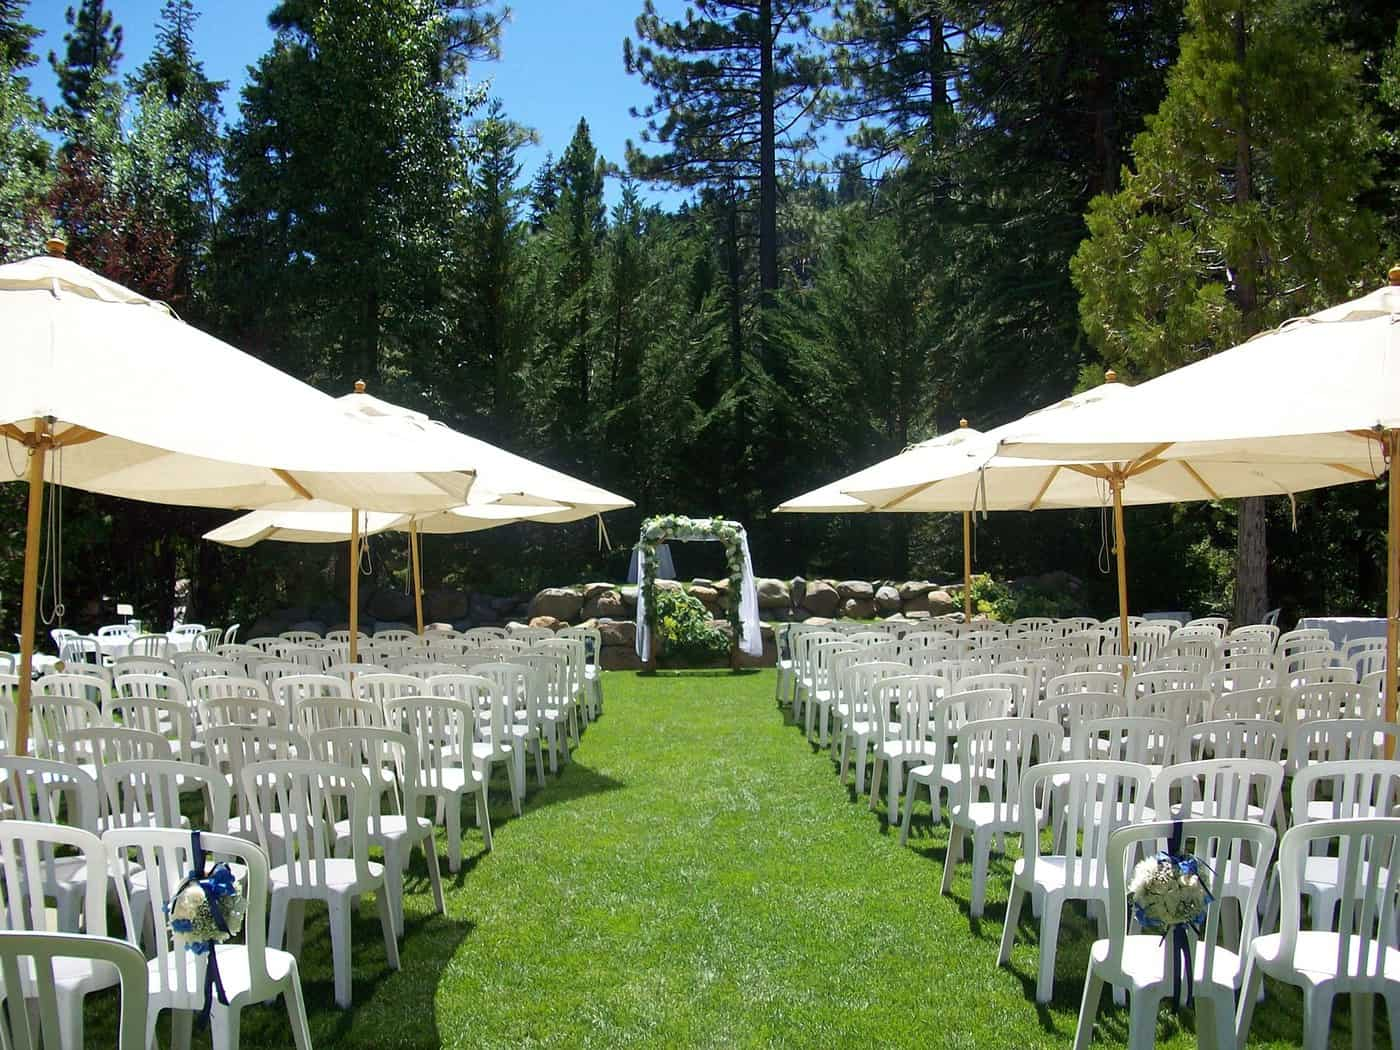 lawn set up for wedding